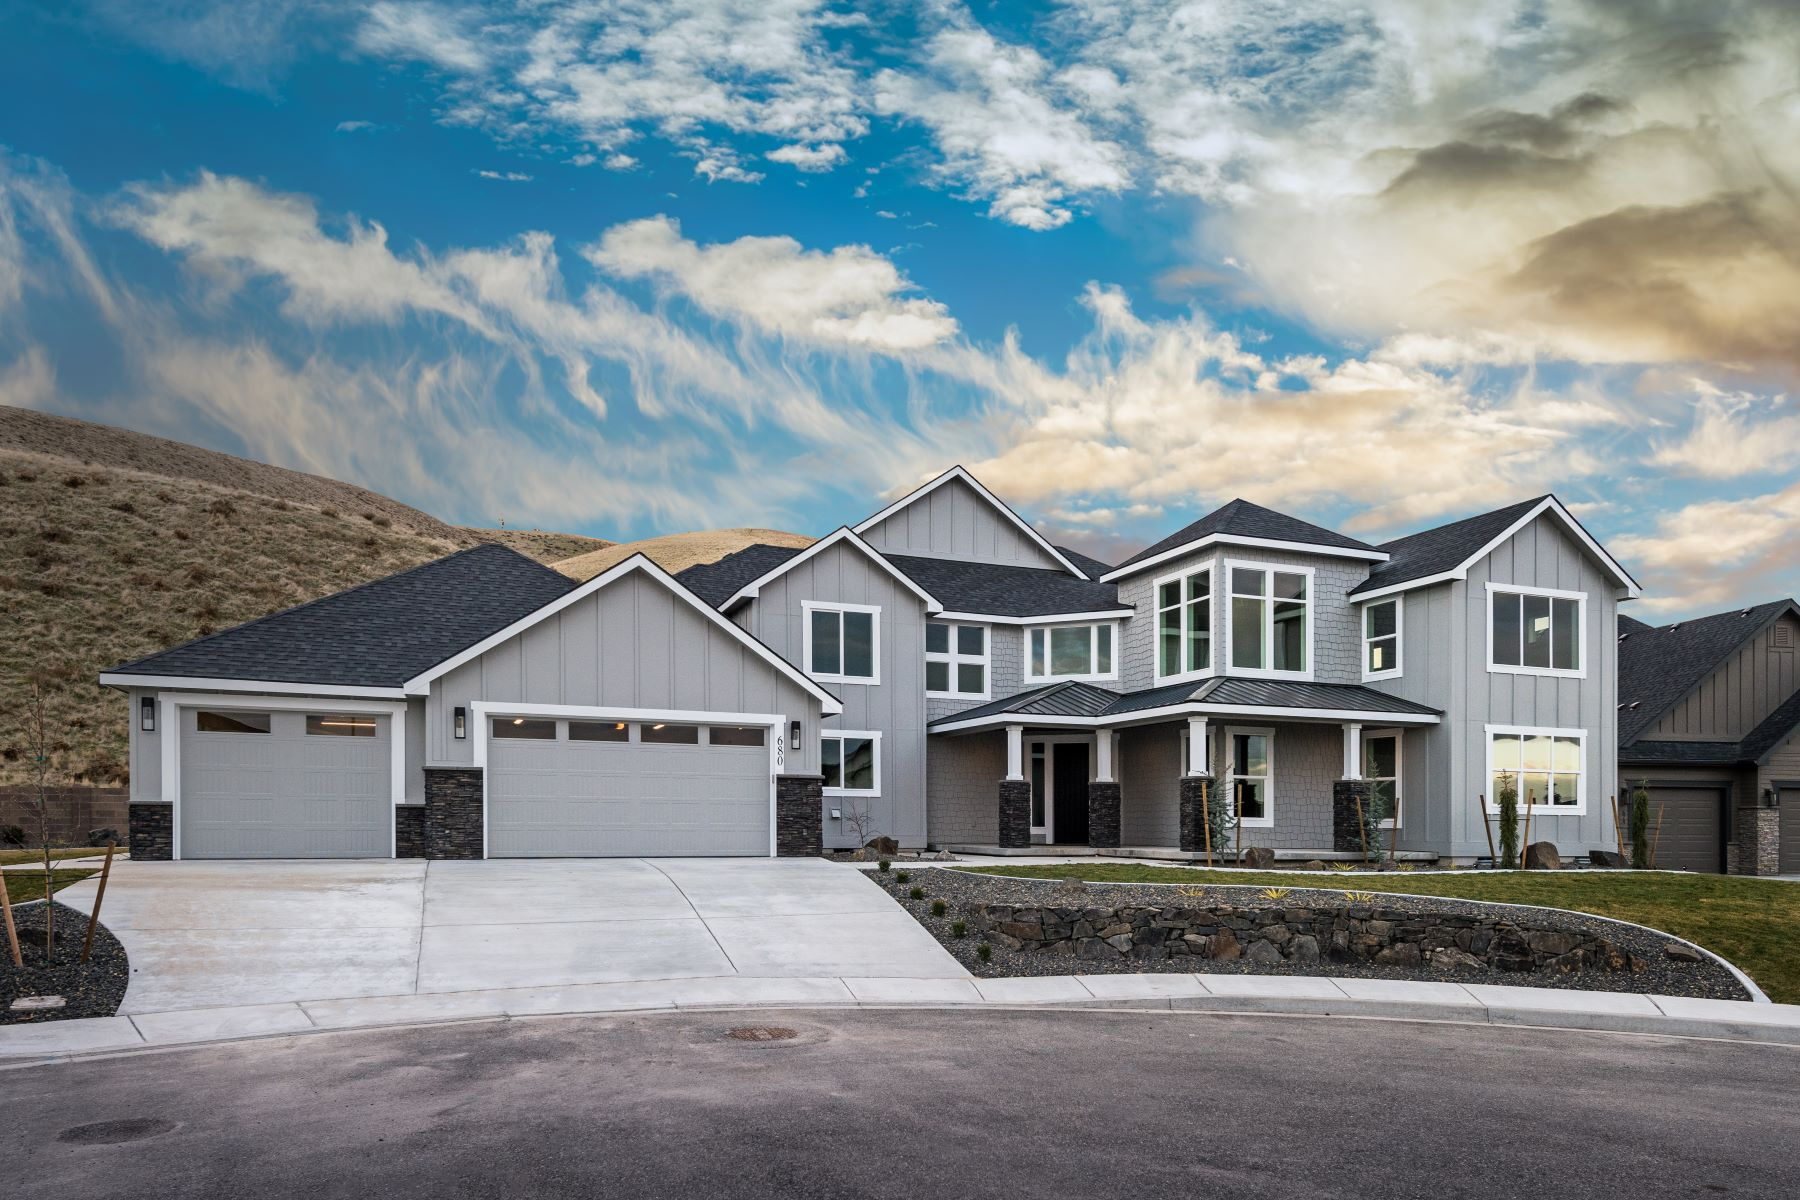 Single Family Home for Sale at New Construction 680 Isola Vista Road Richland, Washington 99352 United States